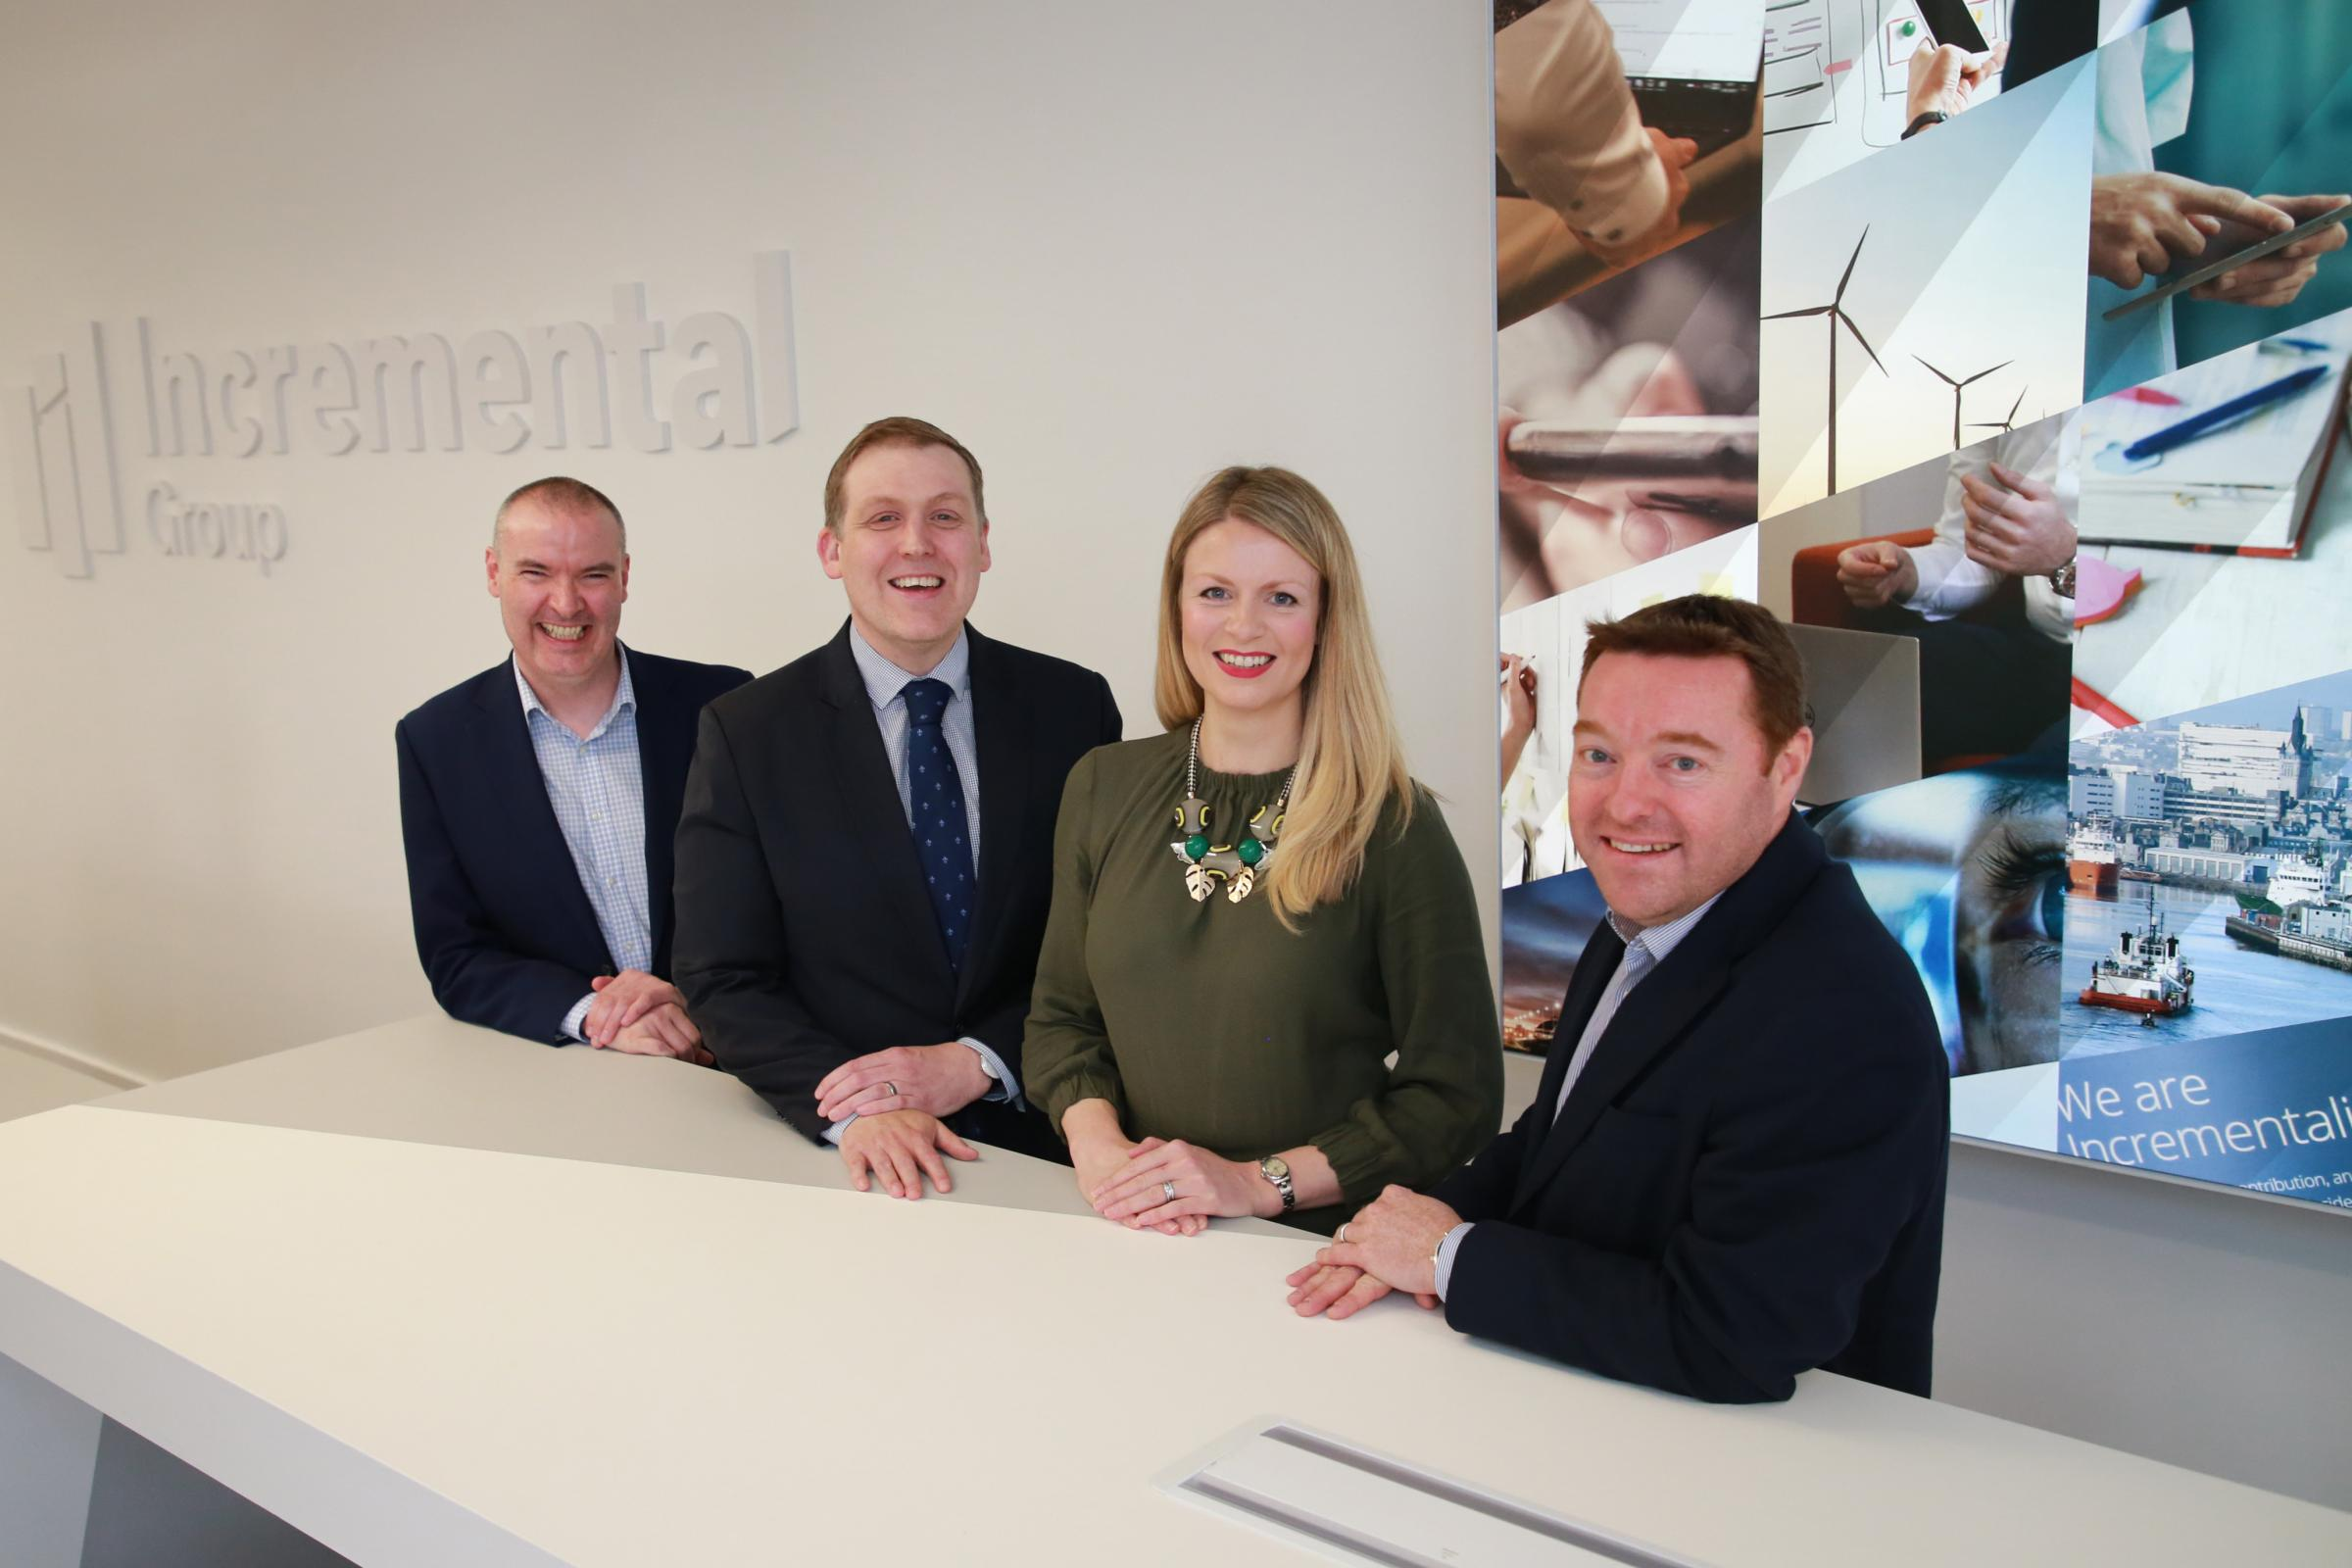 Incremental Group chief executive Neil Logan, second left, with colleagues